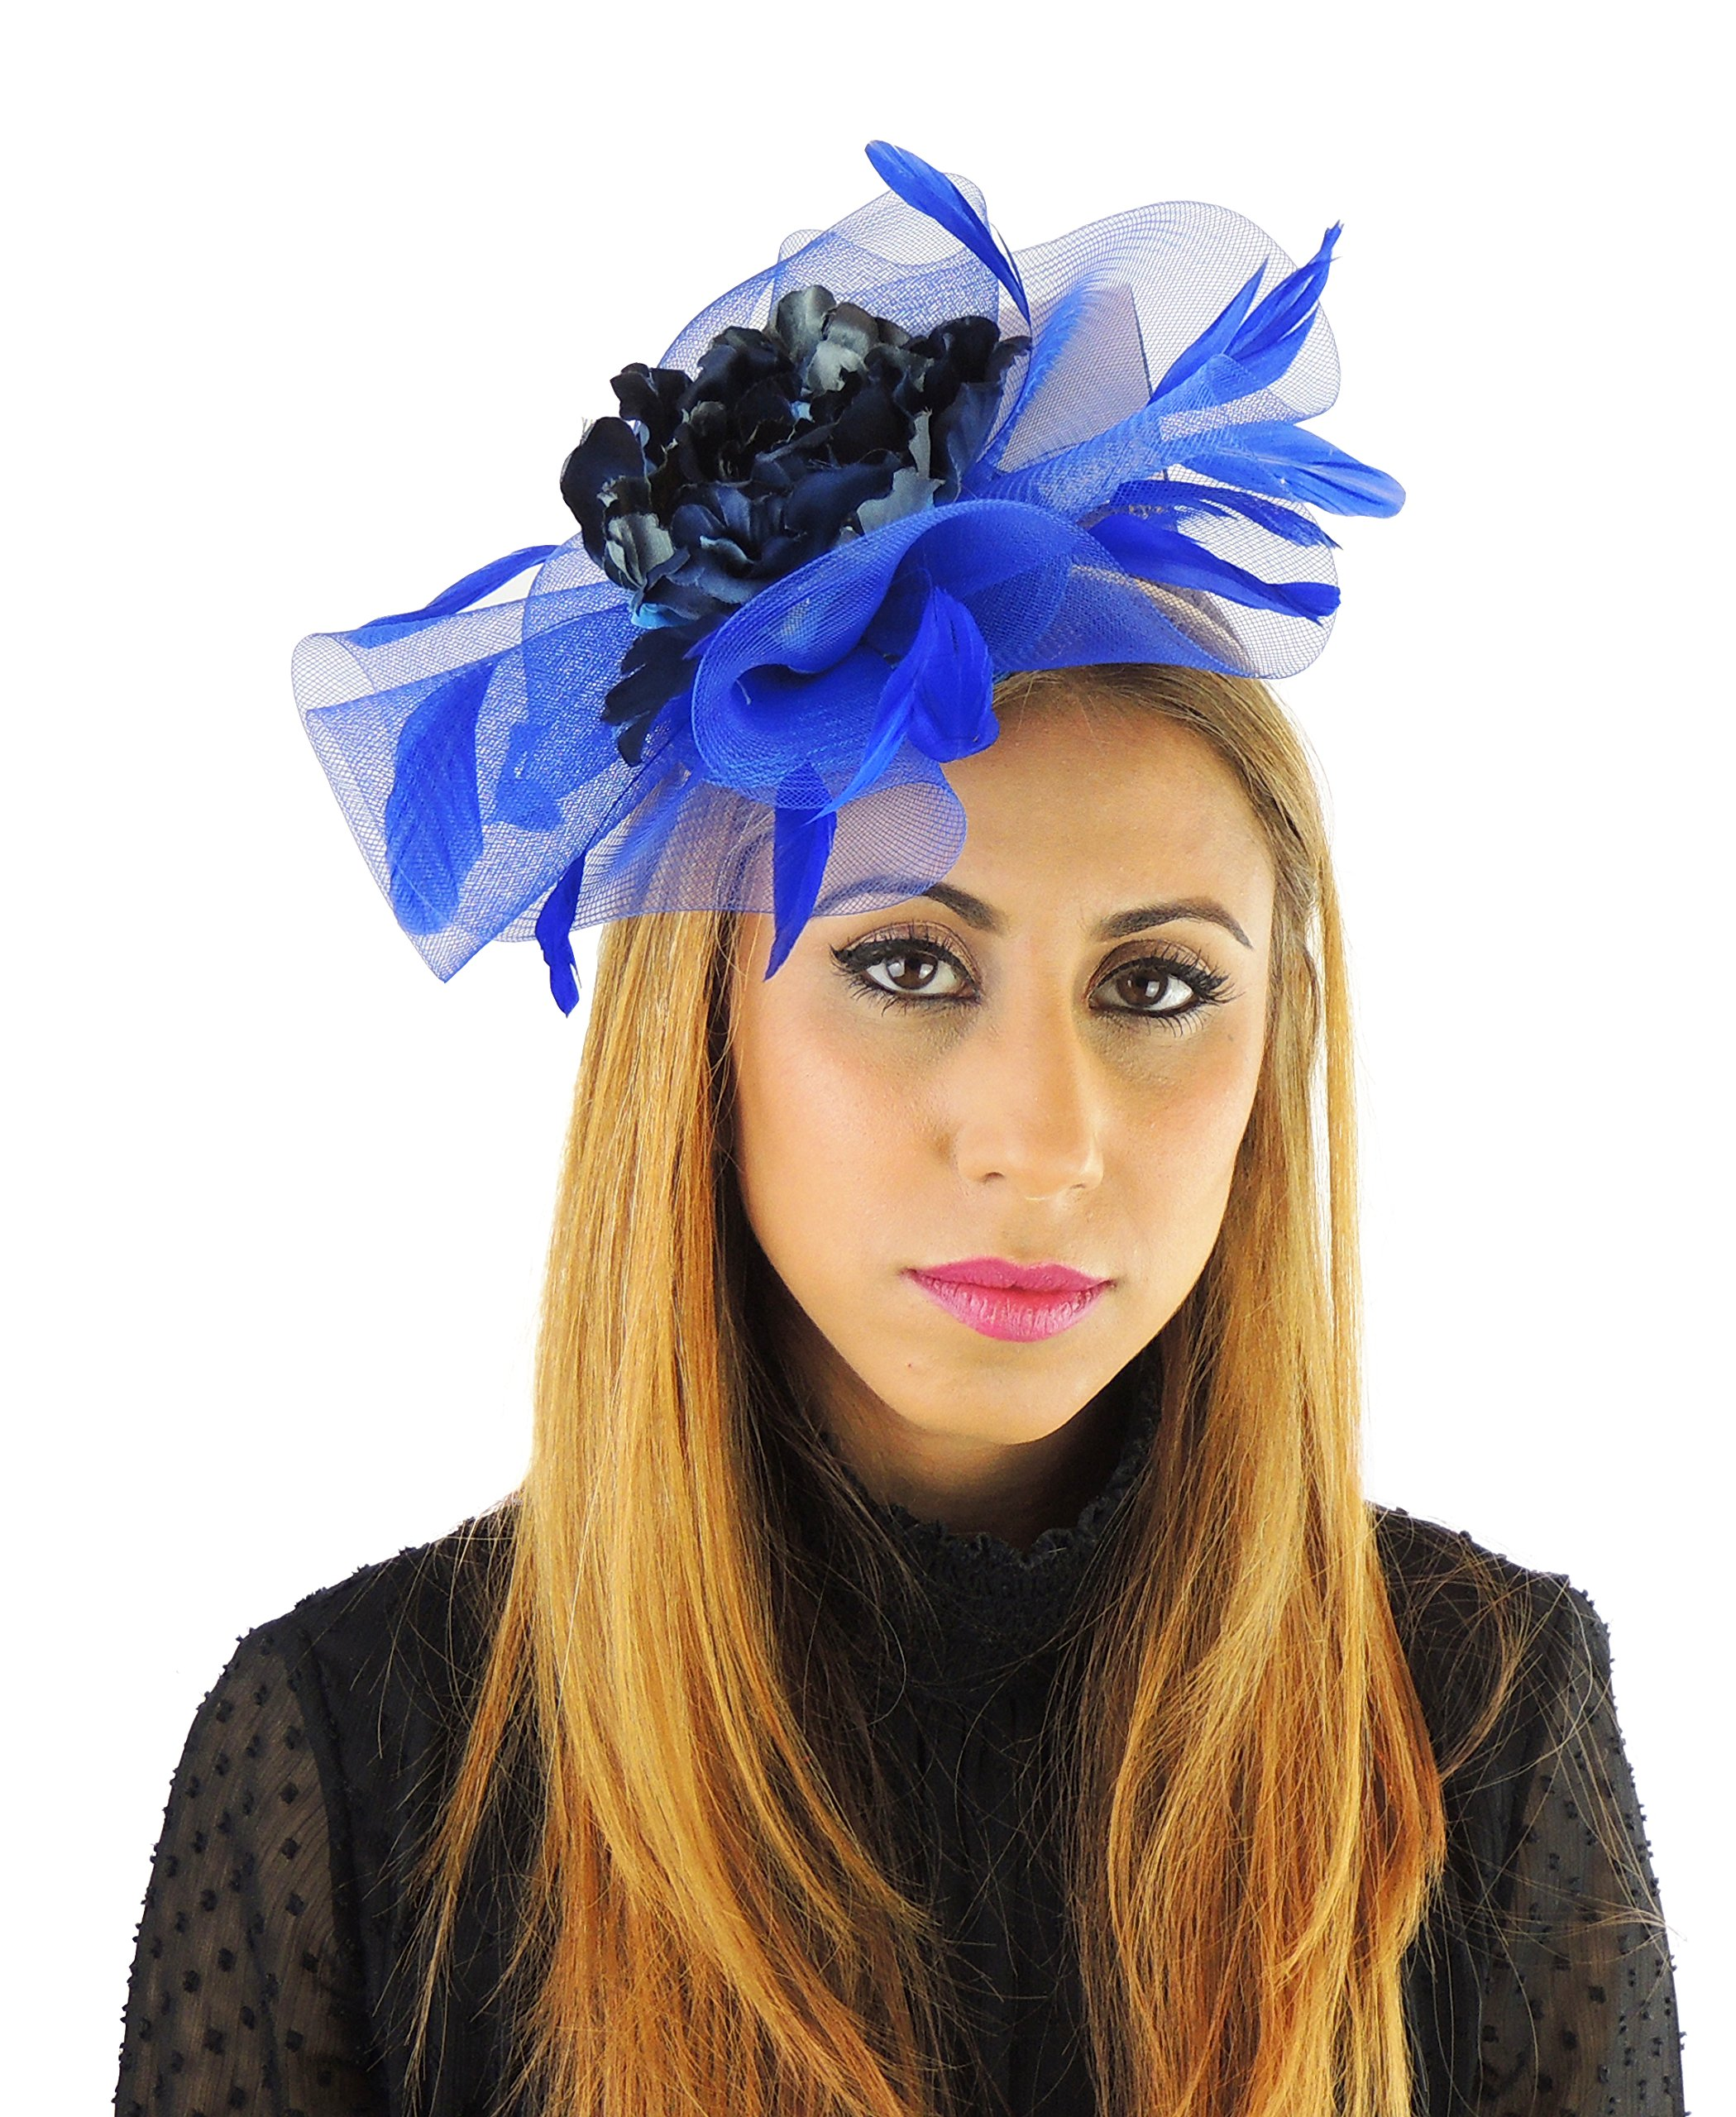 Hats By Cressida Ladies Wedding Races Ascot Derby Fascinator Headband Navy & Royal Blue by Hats By Cressida